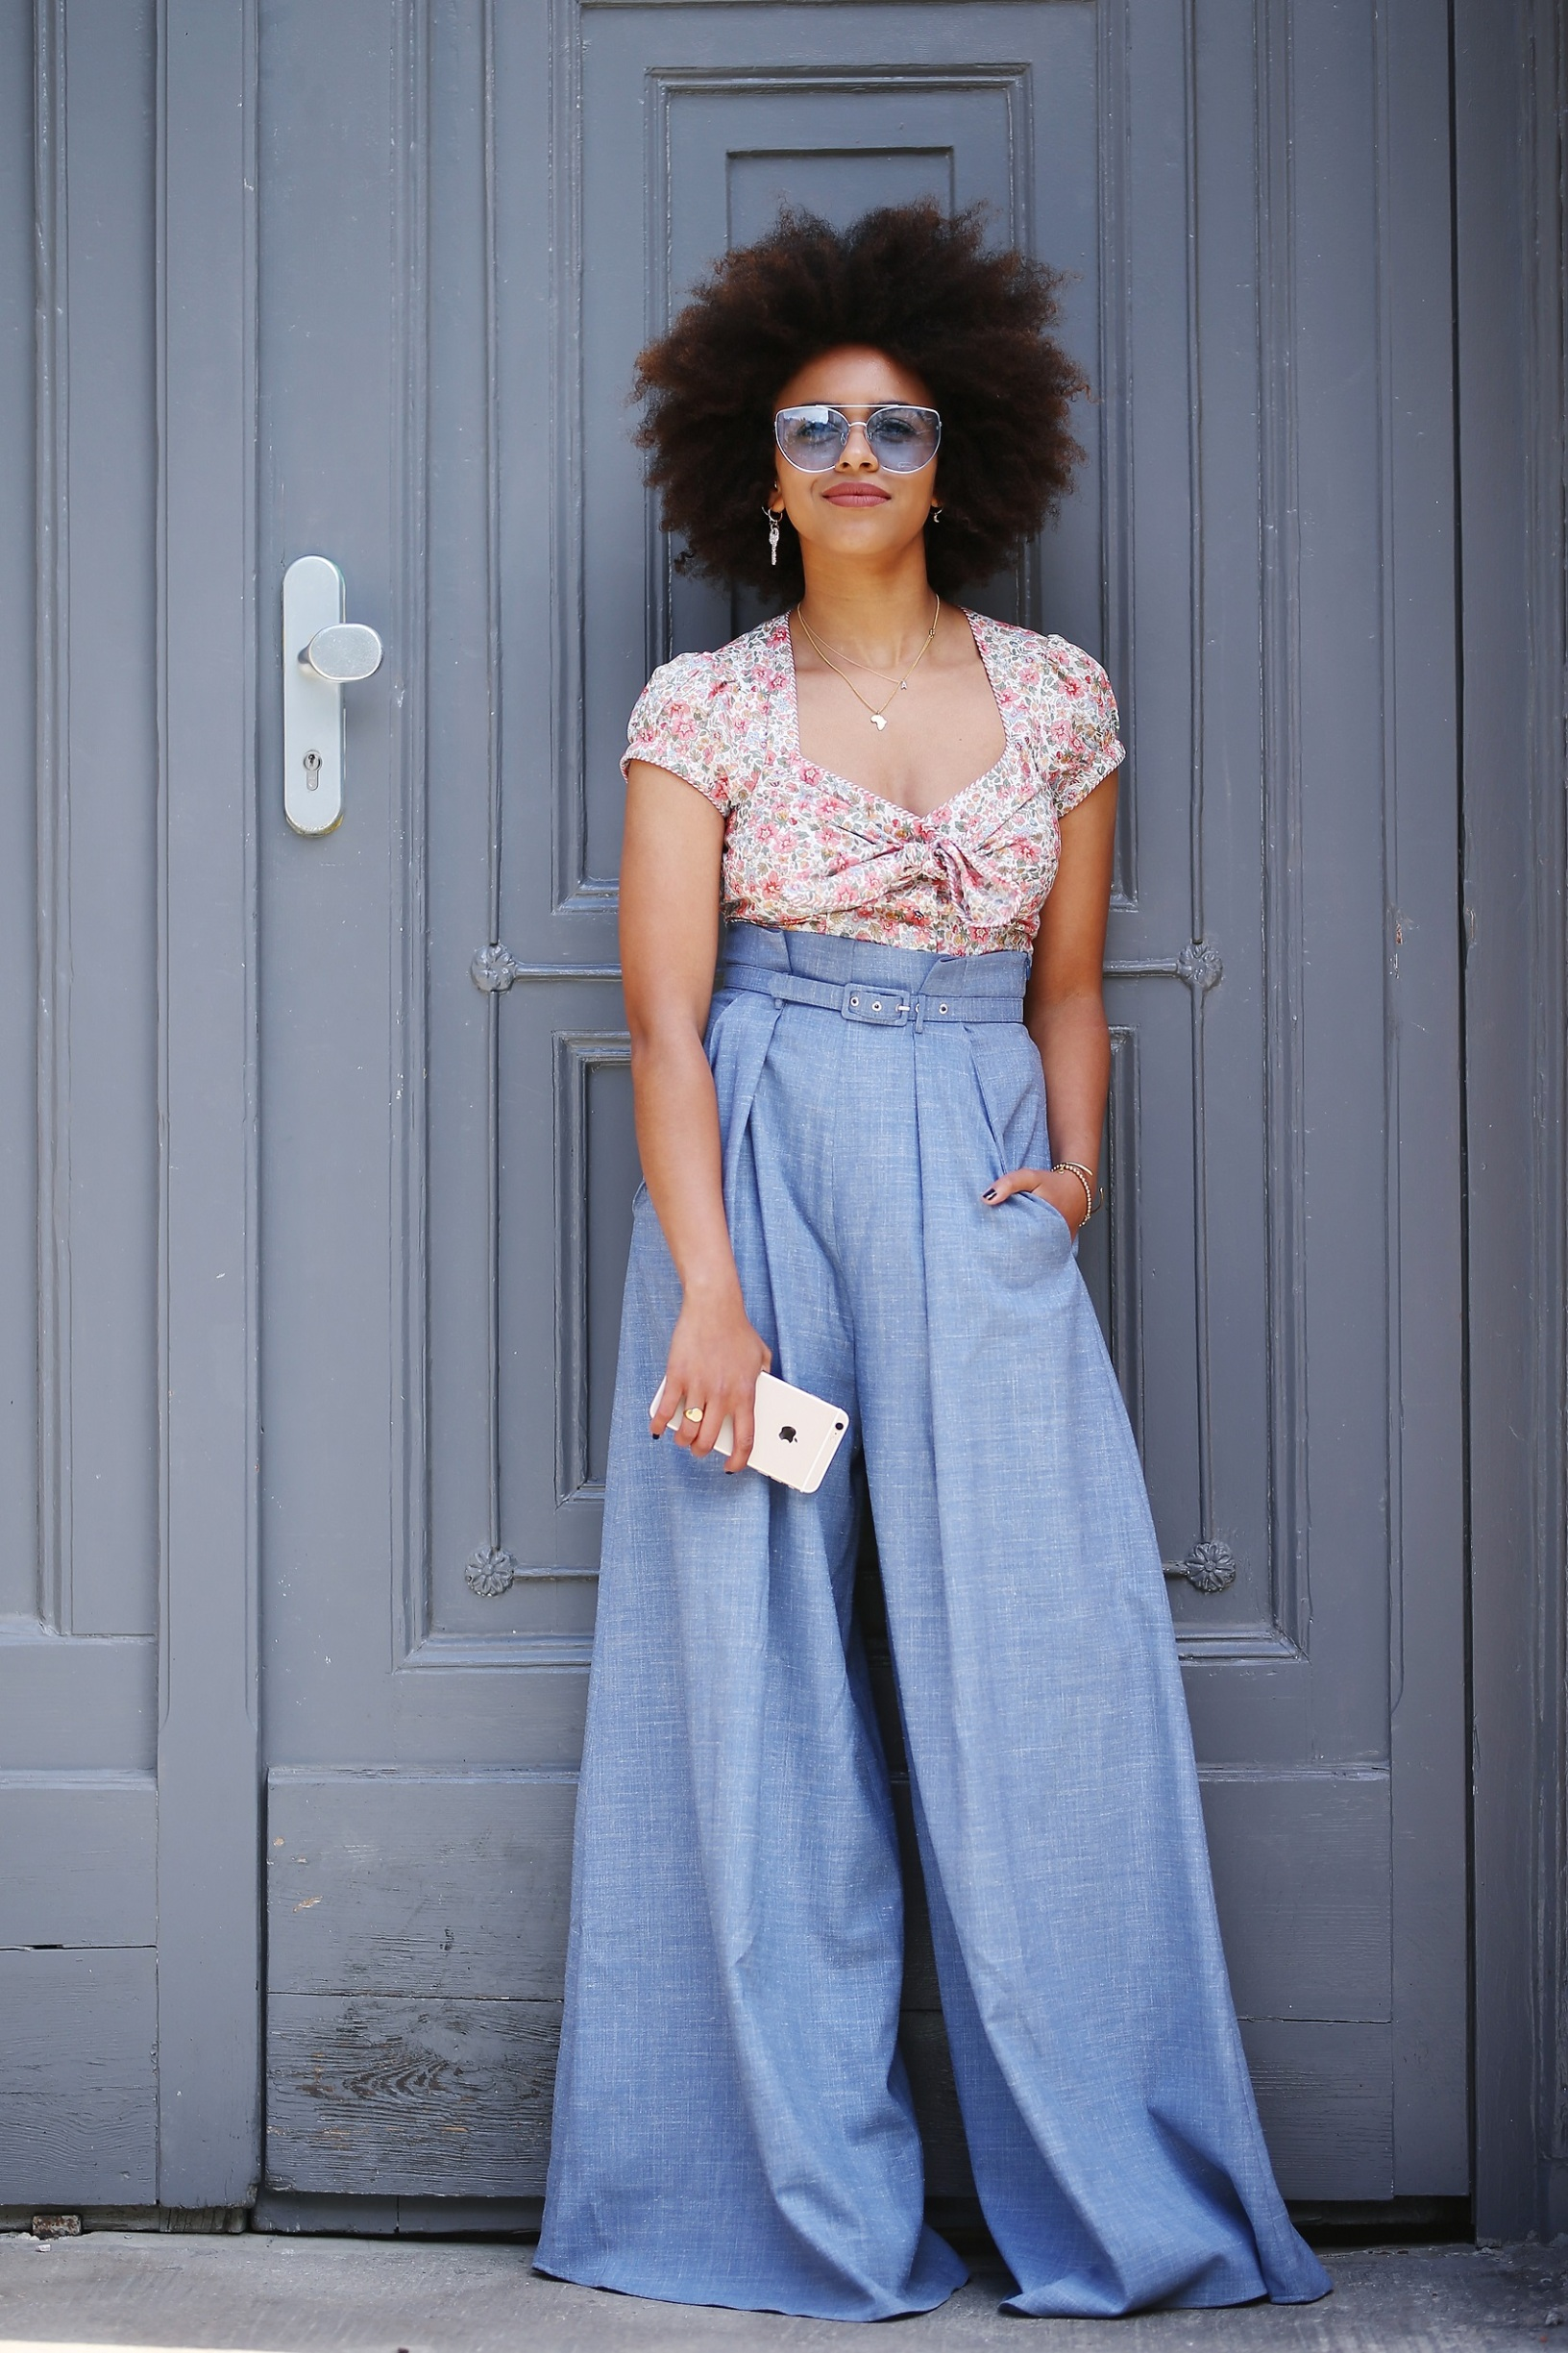 BERLIN, GERMANY - JULY 04: Fashion journalist Aminata Belli, wearing a flower t-shirt, blue sunglasses and denim pants, is seen during the Mercedes-Benz Fashion Week Berlin Spring/Summer 2018 at Kaufhaus Jandorf on July 4, 2017 in Berlin, Germany.  (Photo by Thomas Niedermueller/Getty Images)